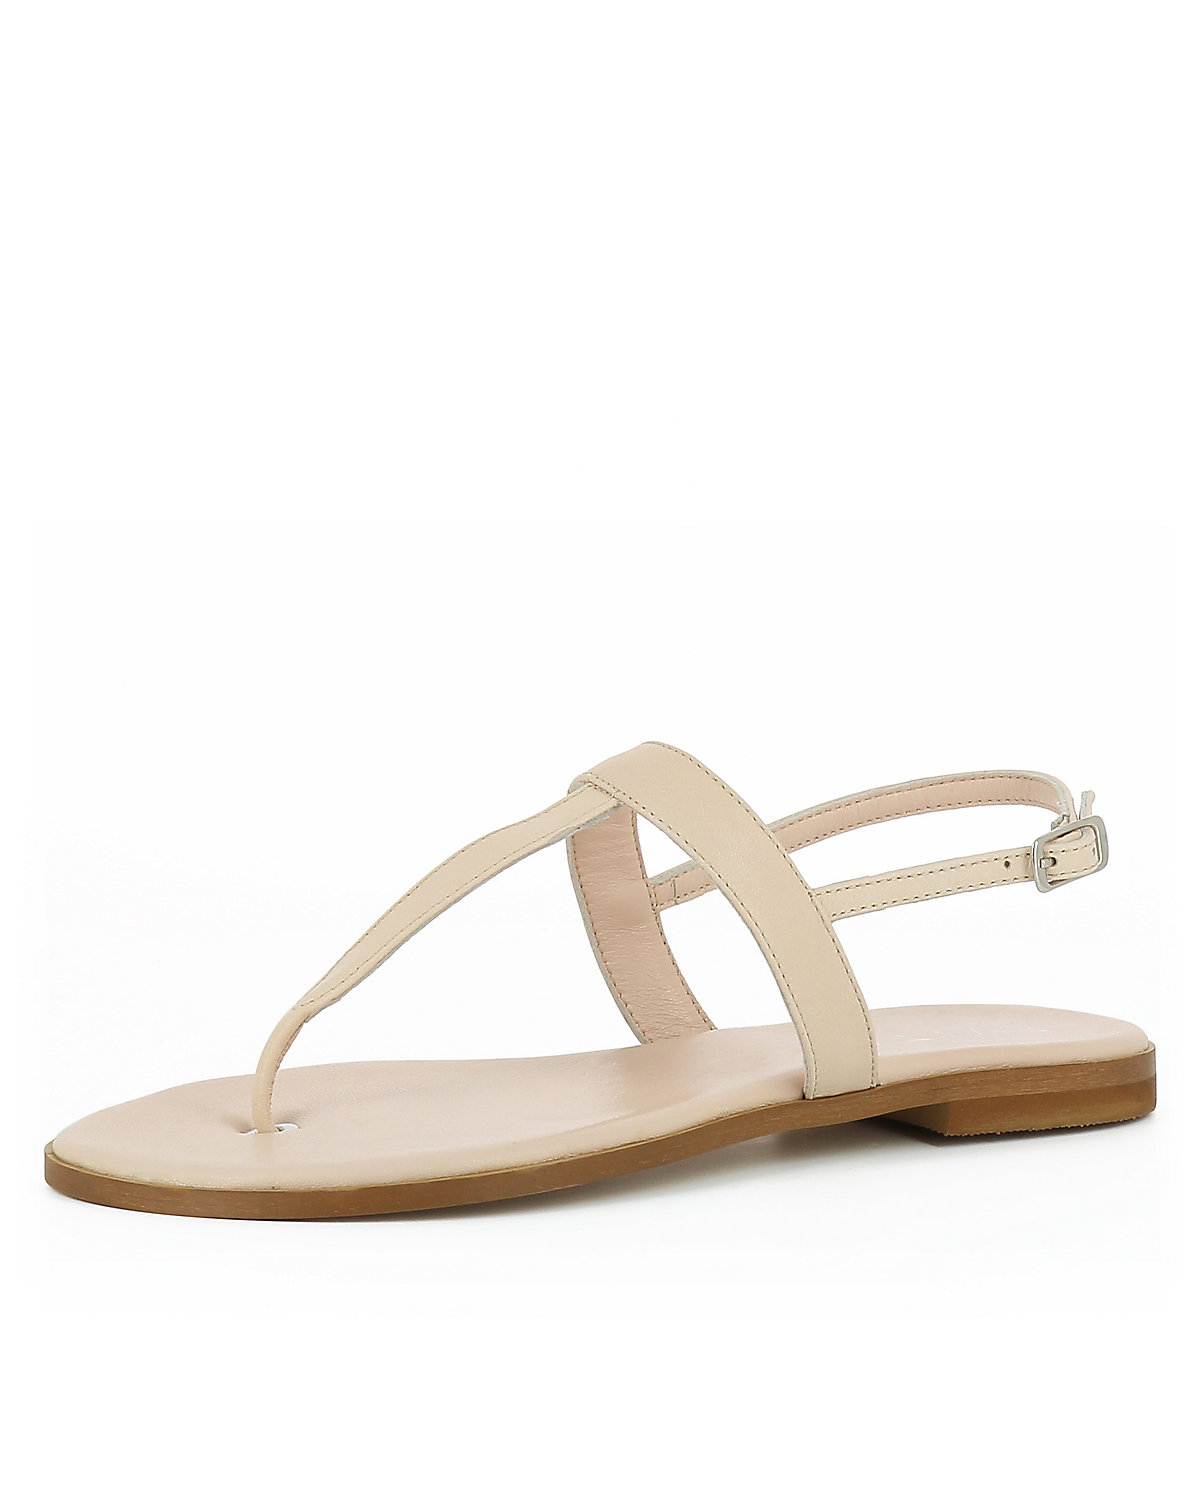 Evita Shoes, OLIMPIA OLIMPIA Shoes, Klassische Sandalen, beige e6f0a5